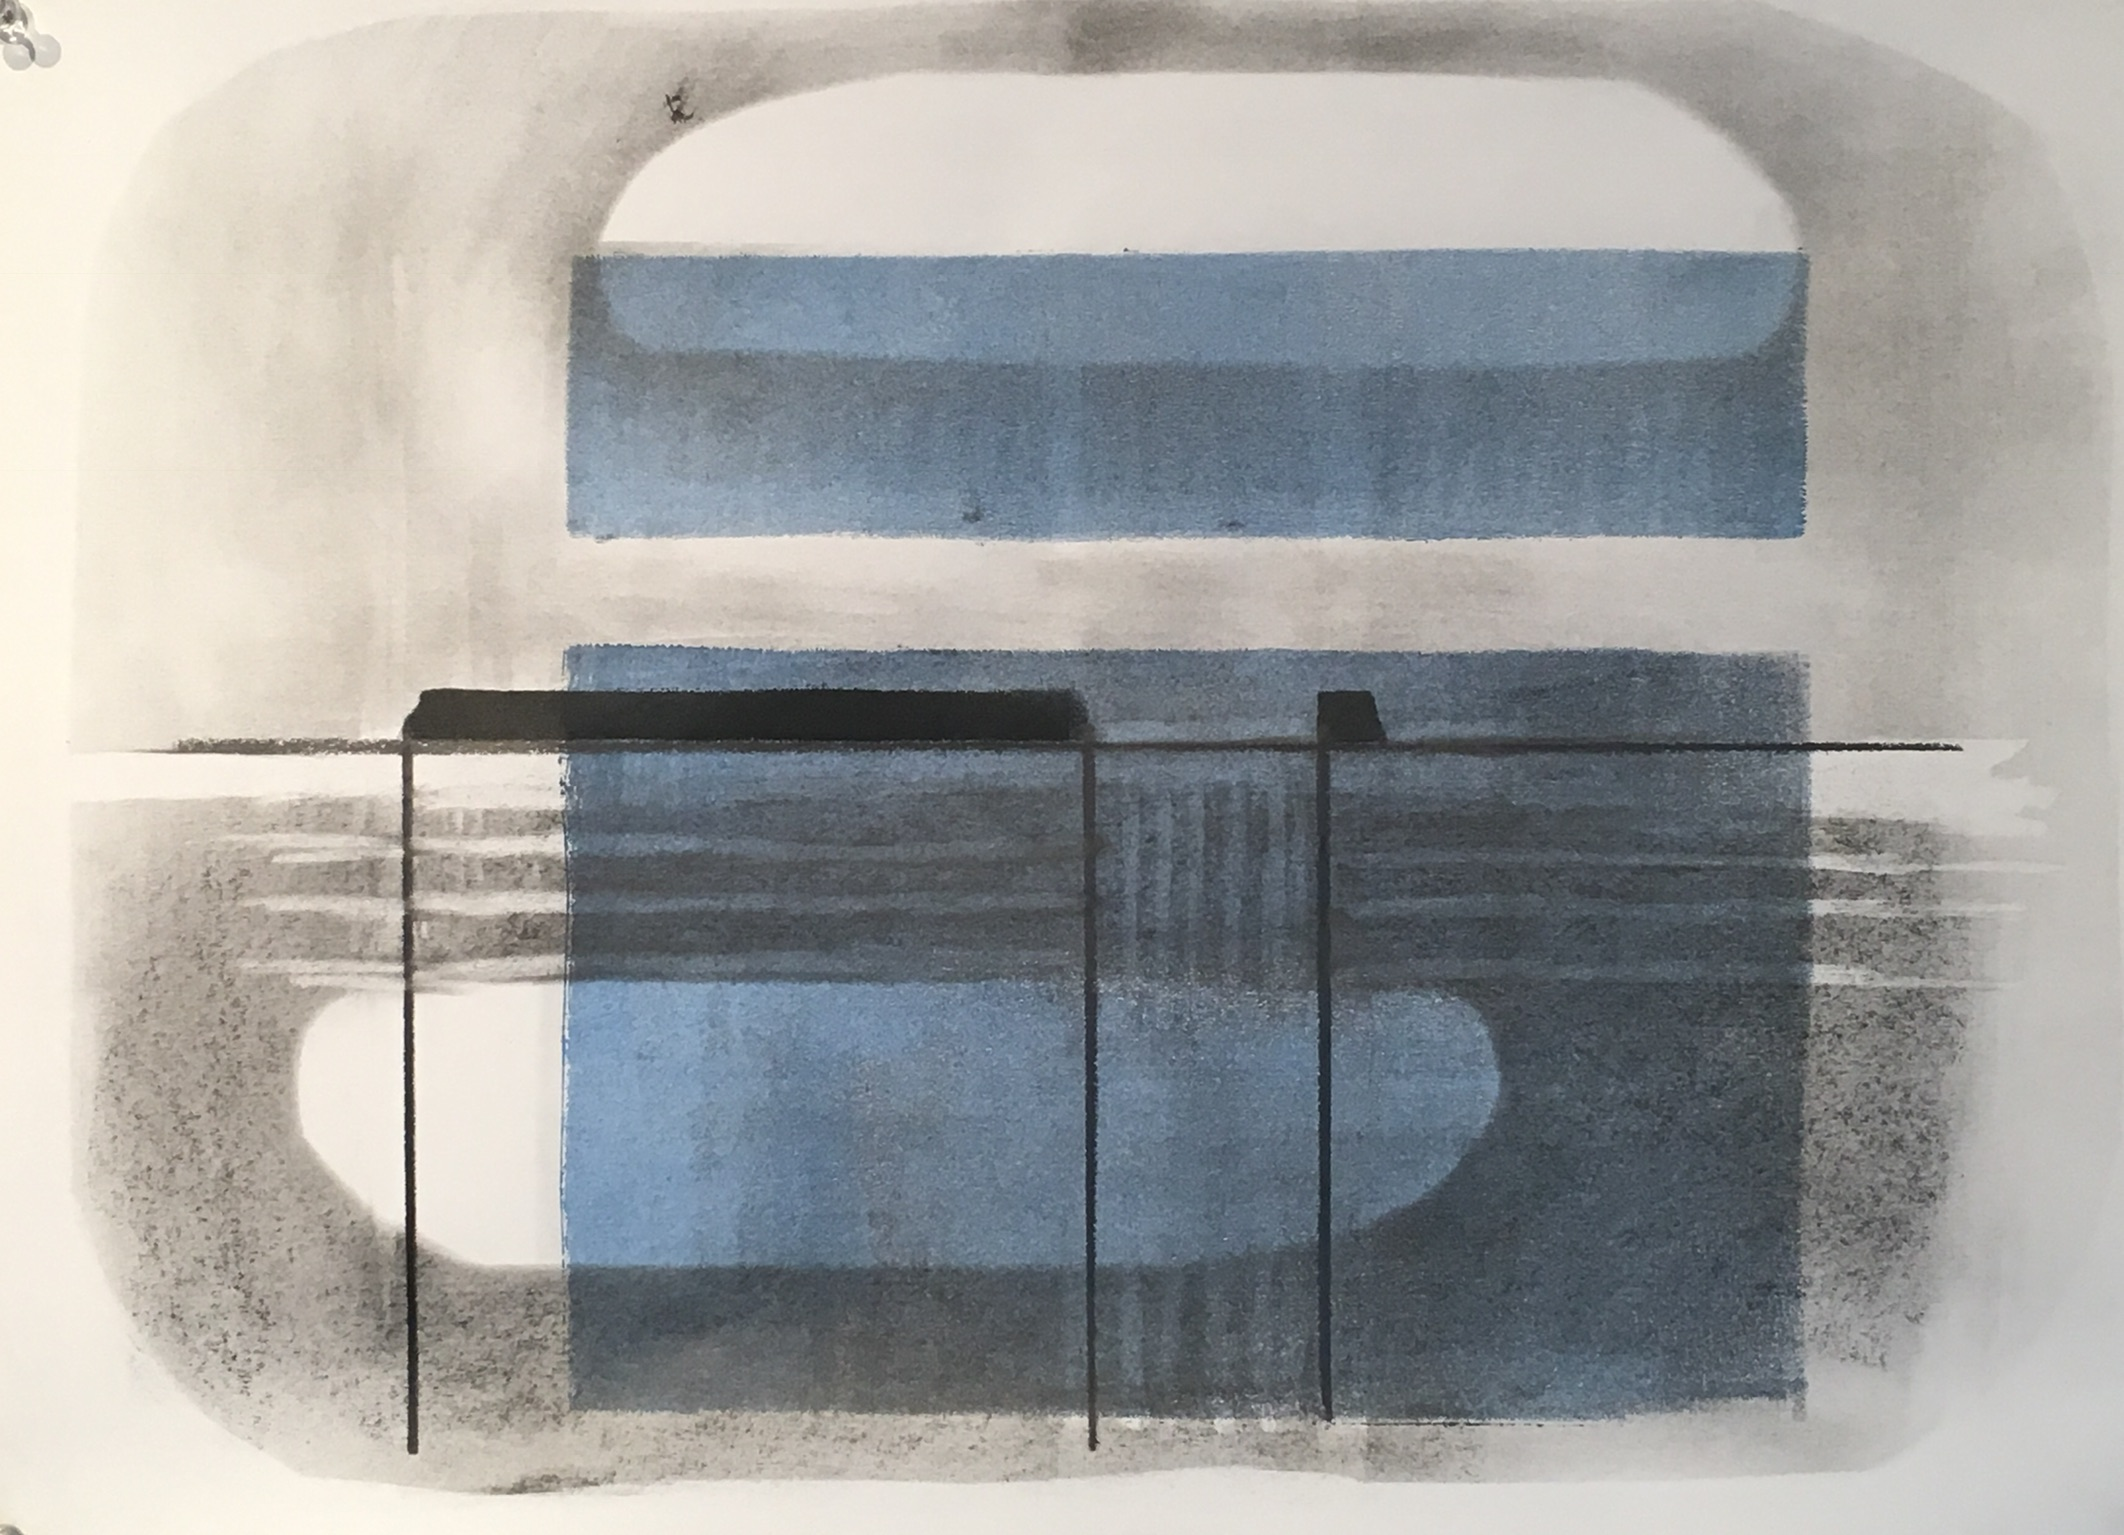 Cloud, fog, horizon, island, ice, extraction, subsea, unseen, miasmarine   13 x 19 acrylic and graphite on paper